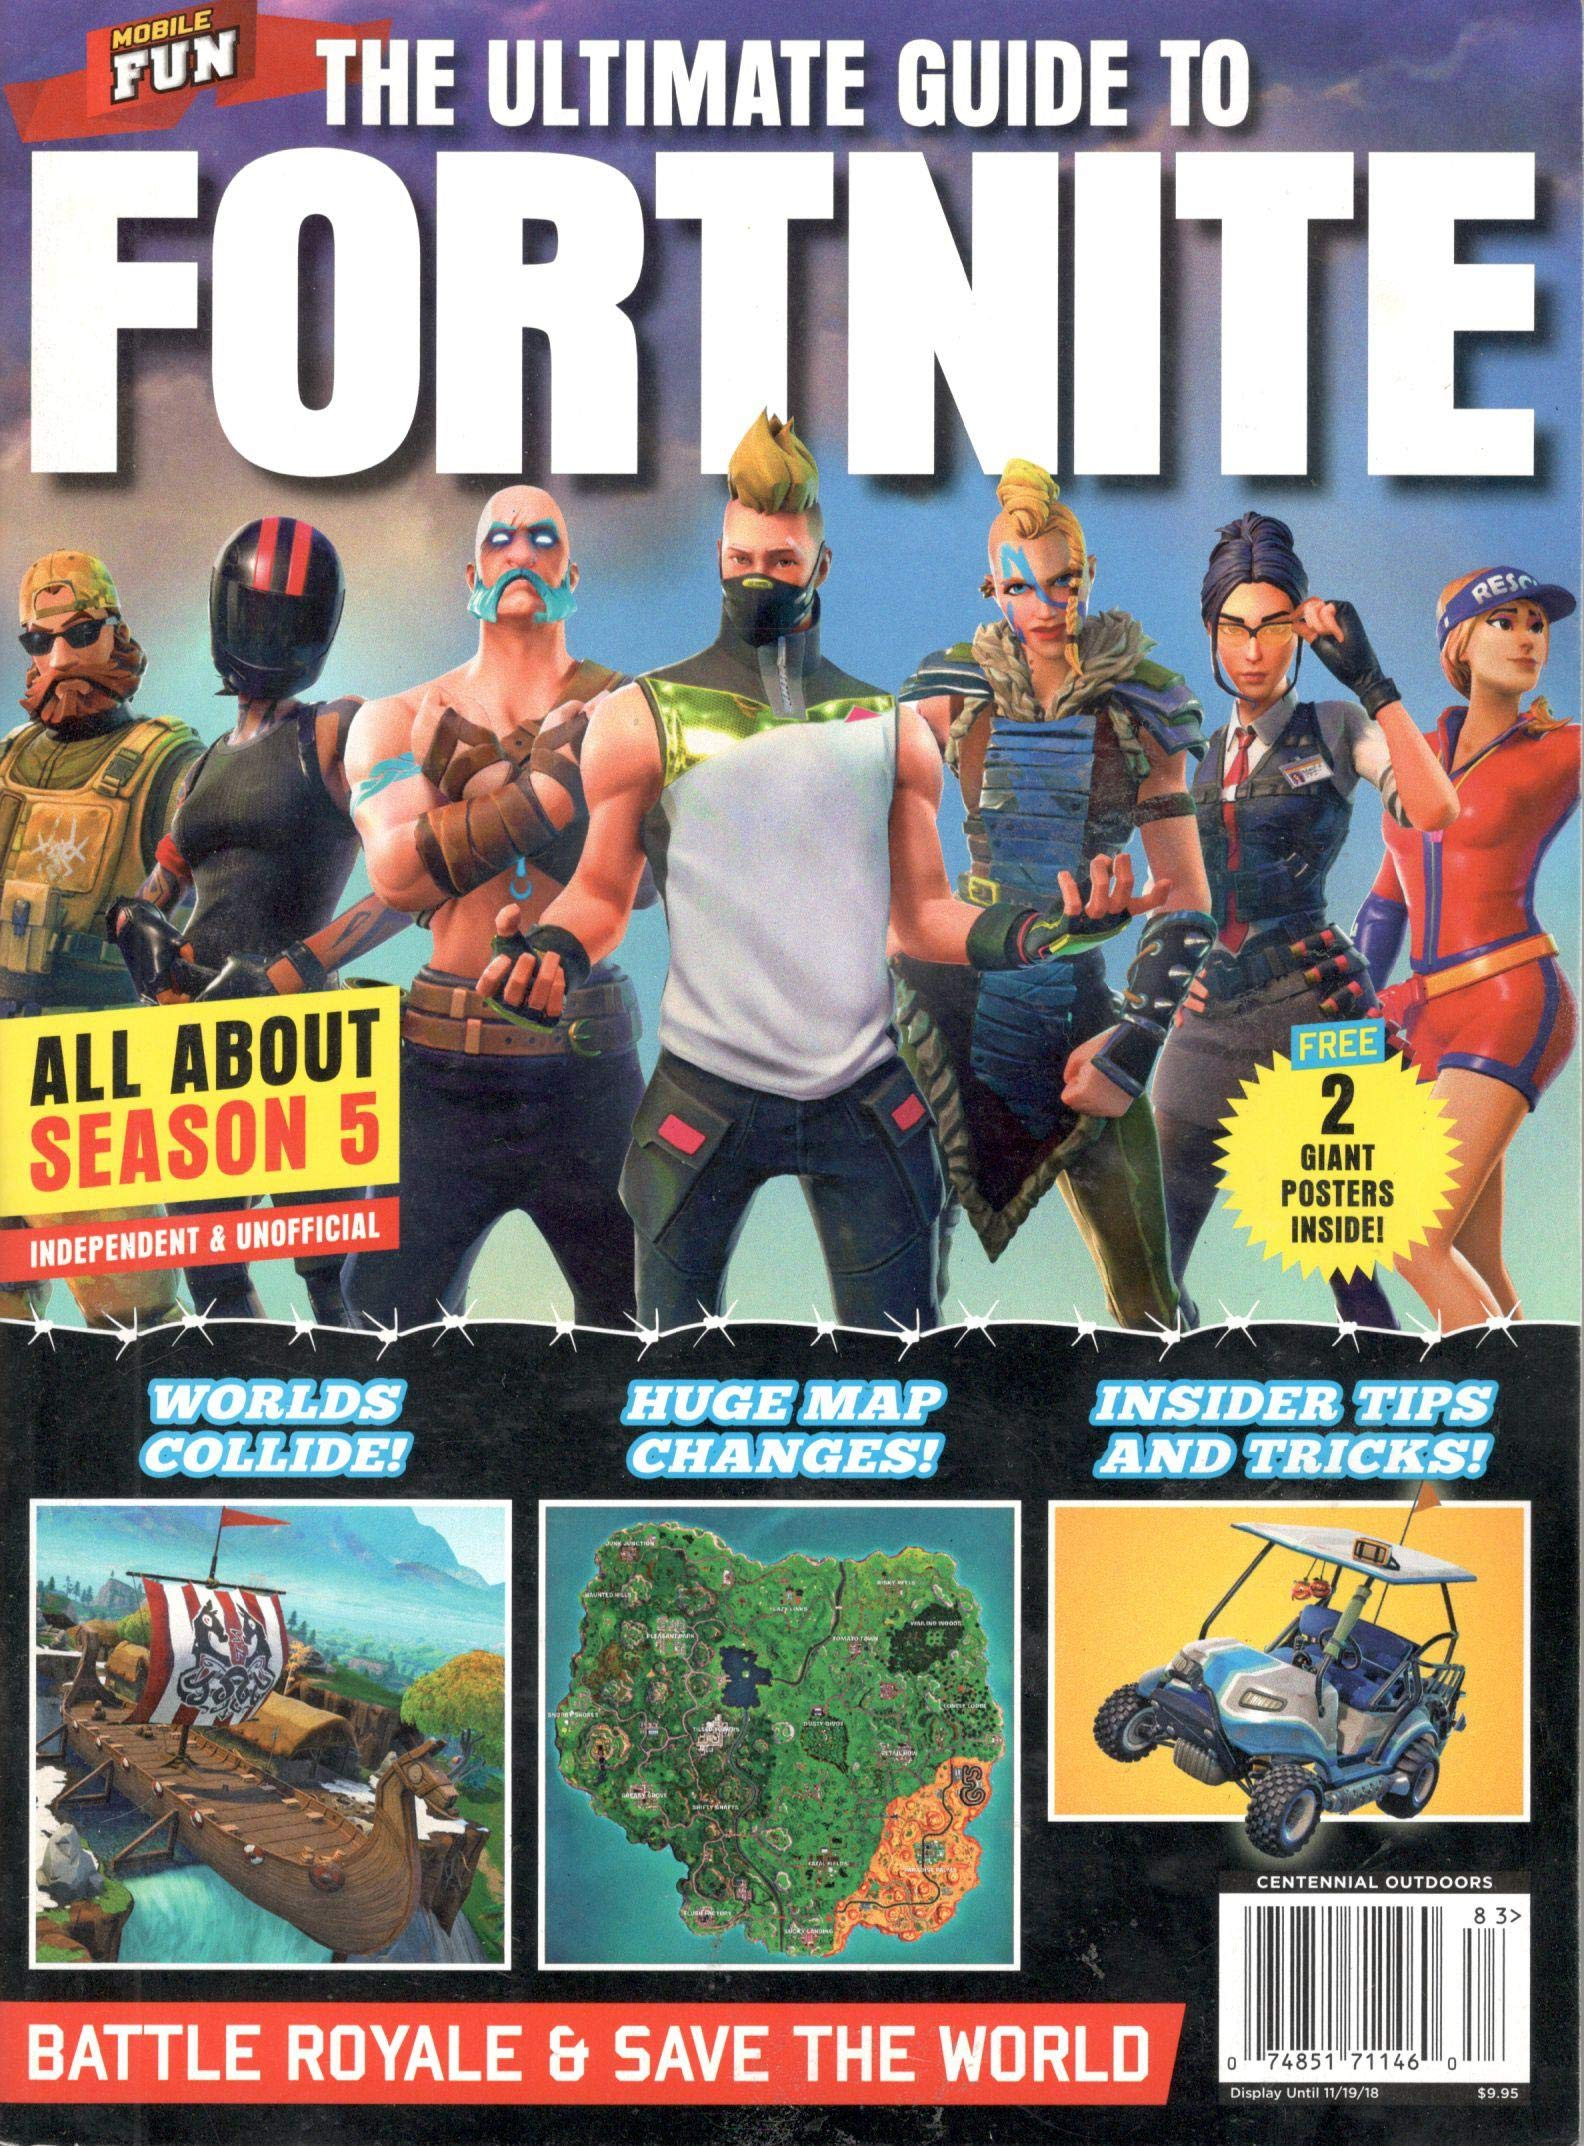 The Ultimate Guide To Fortnite Magazine All About Season 5